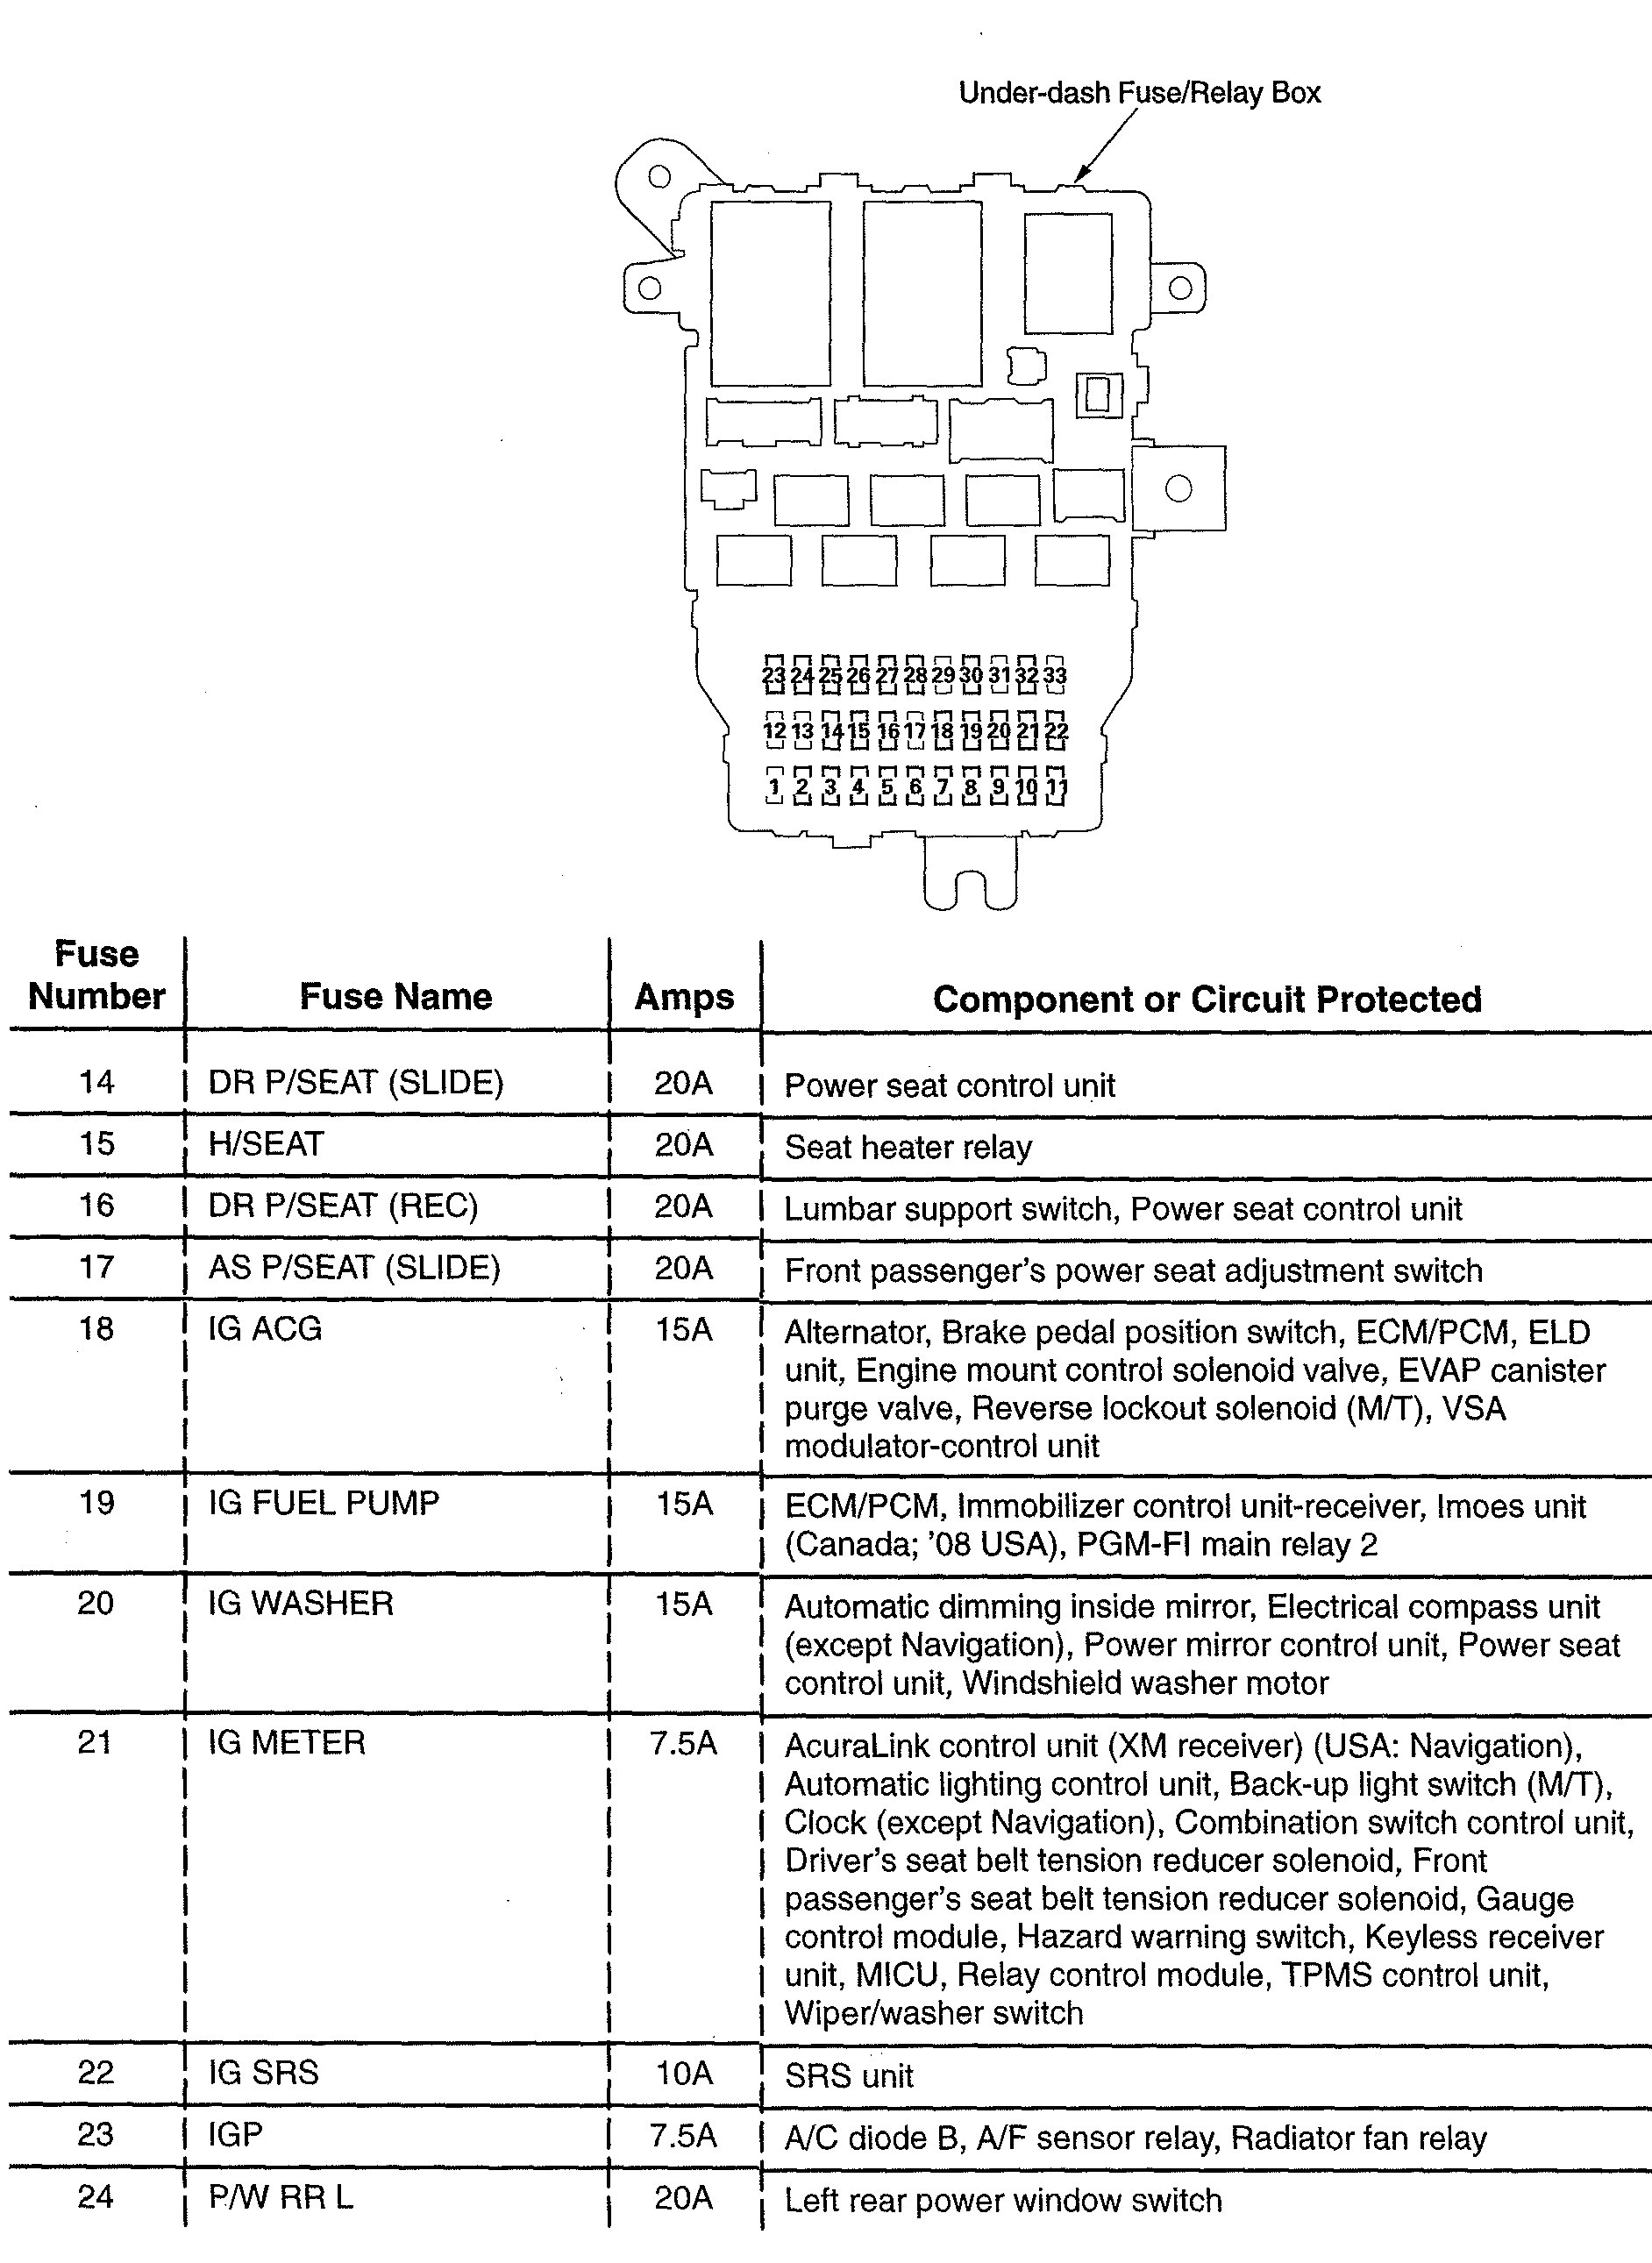 acura tl wiring diagram fuse panel 2 2008 acura tl (2008) wiring diagrams fuse panel carknowledge 2007 acura tl wiring diagram at panicattacktreatment.co